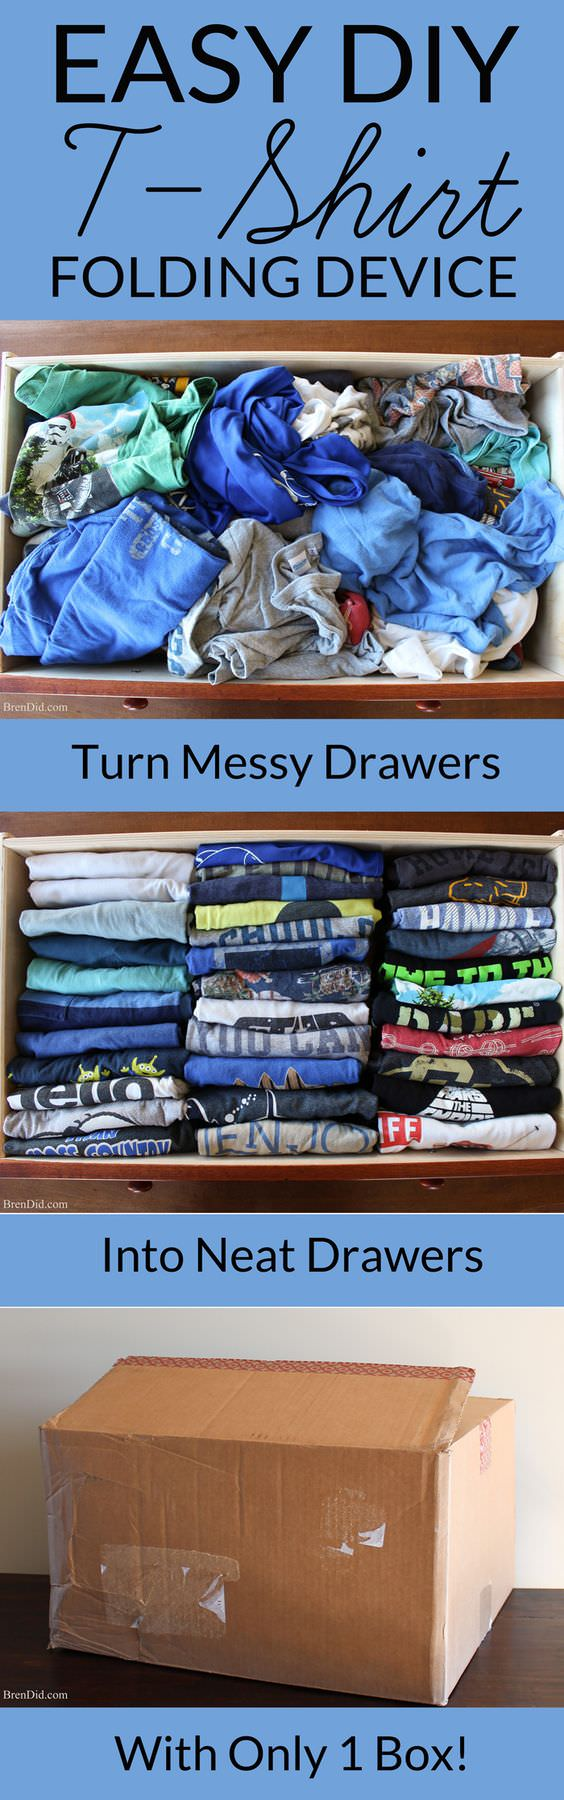 make an easy diy t shirt folding device from a cardboard box best of home and garden pinterest. Black Bedroom Furniture Sets. Home Design Ideas